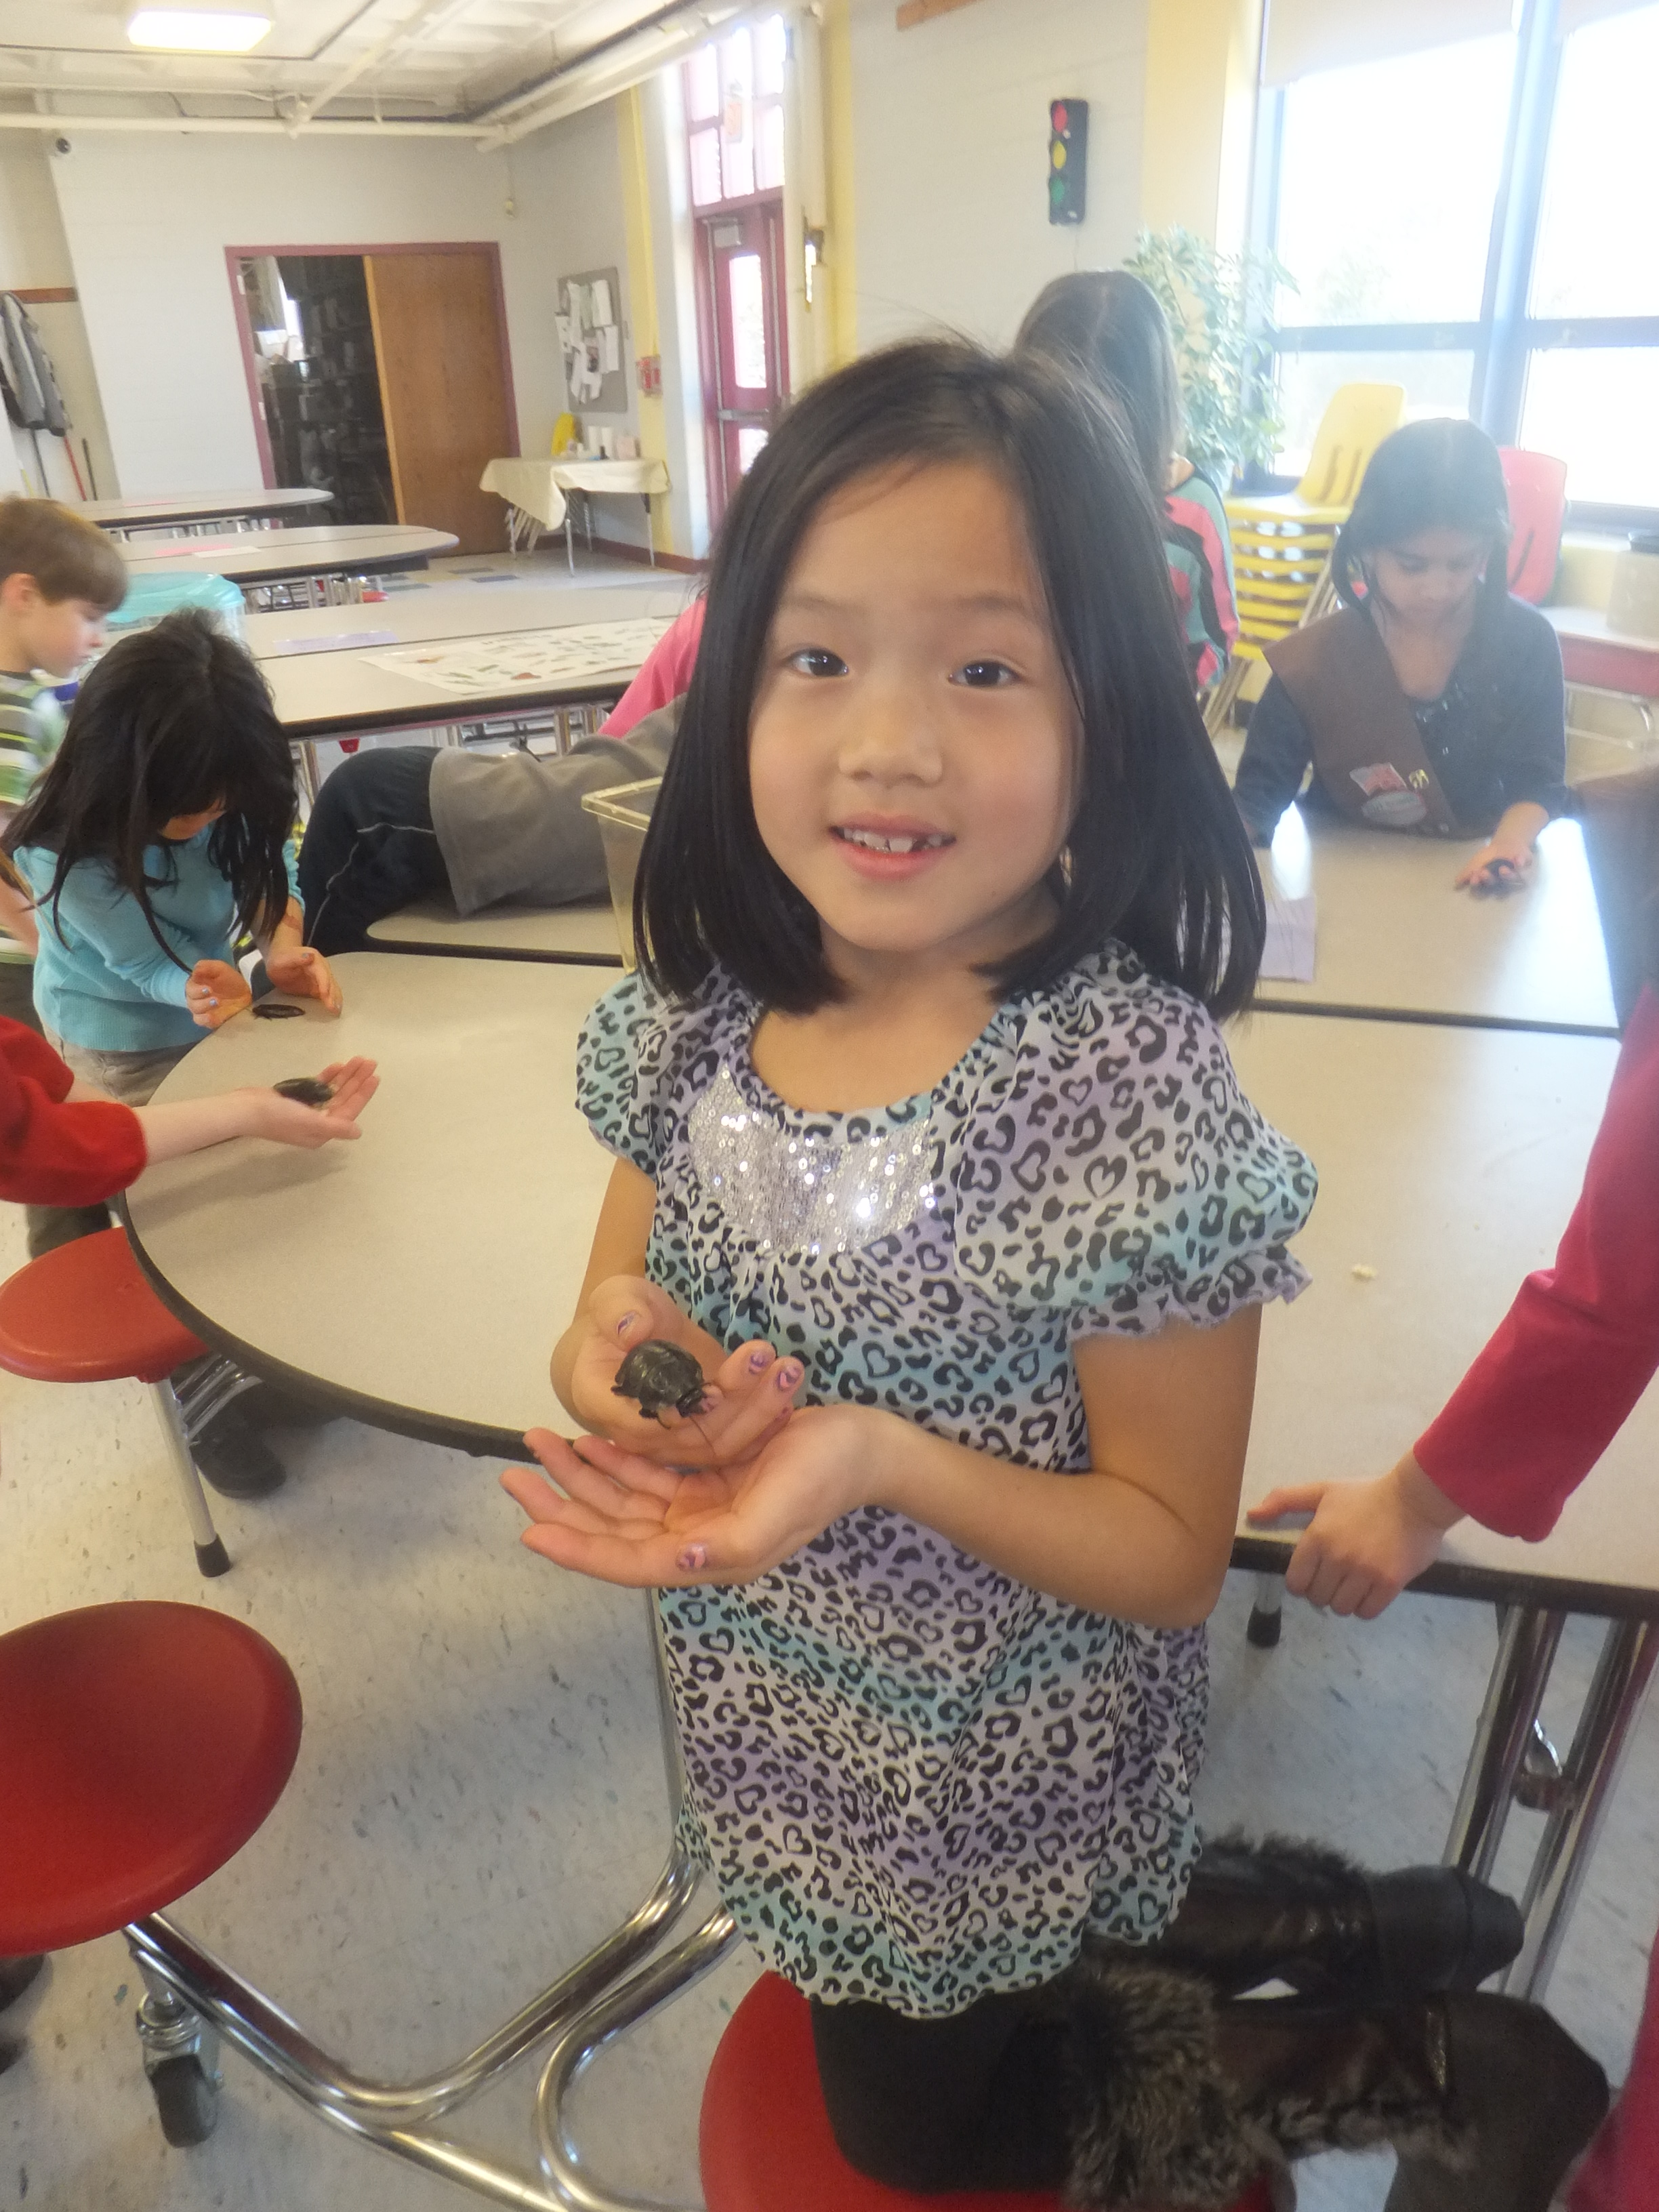 insects | The Burlington Science Center